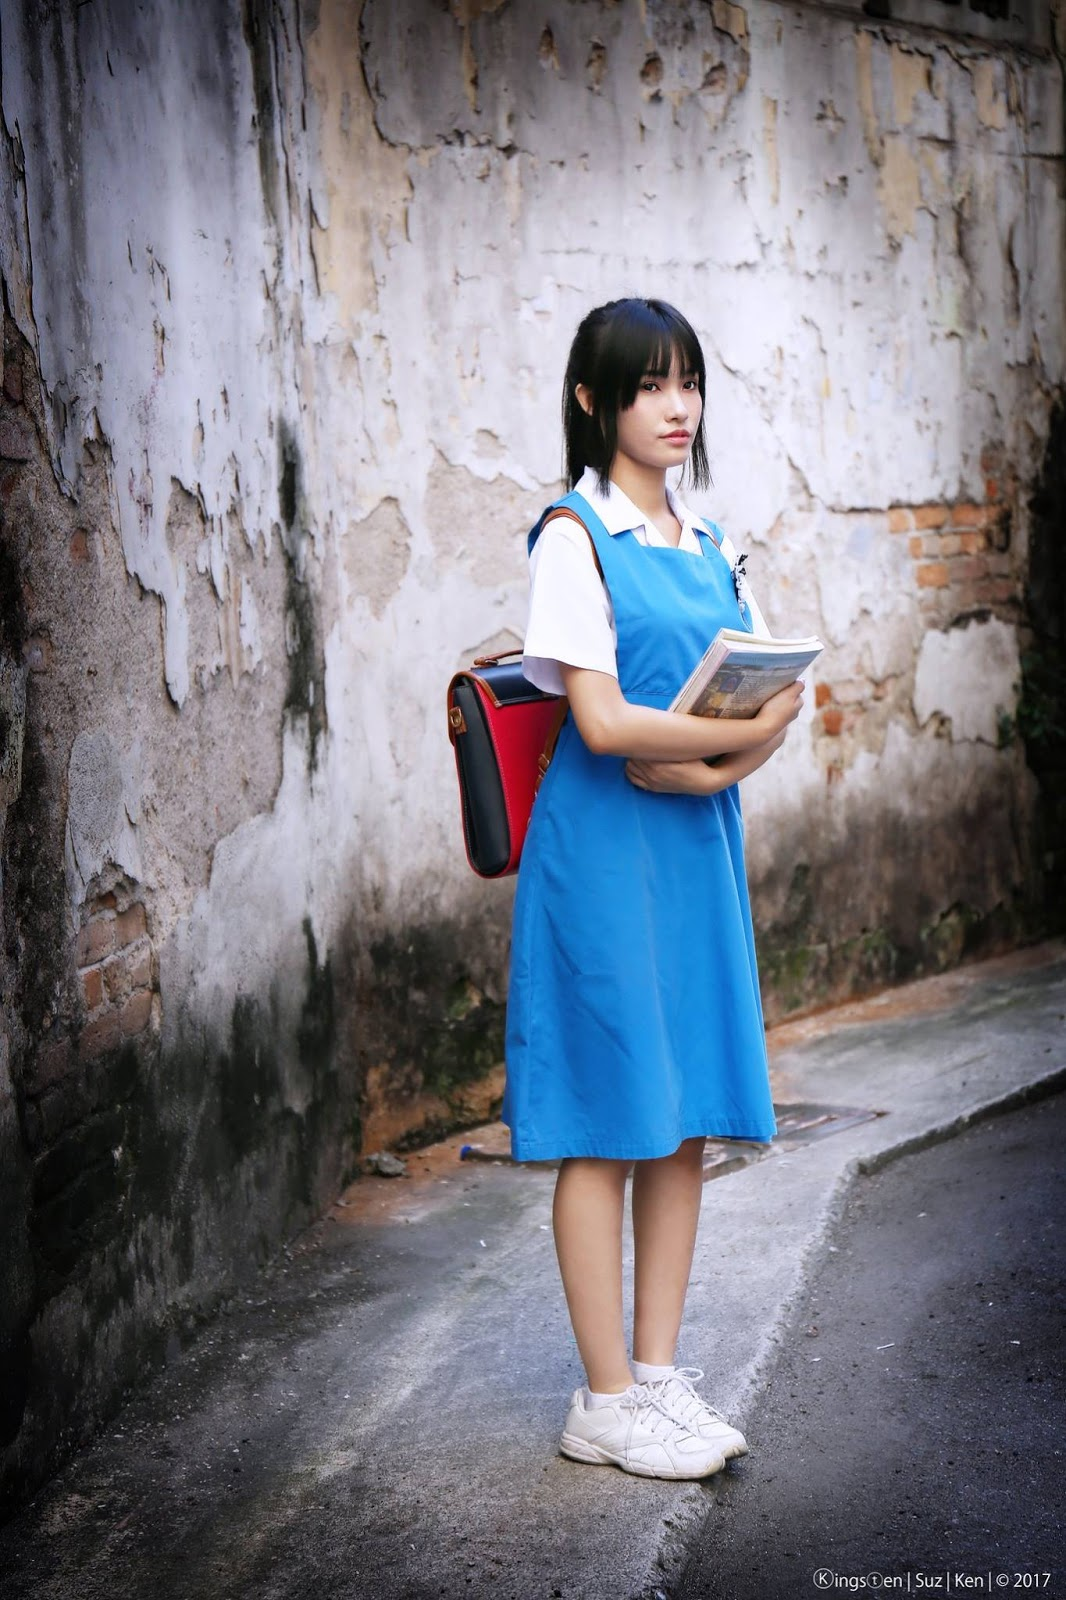 Malaysian school girl photos and teens